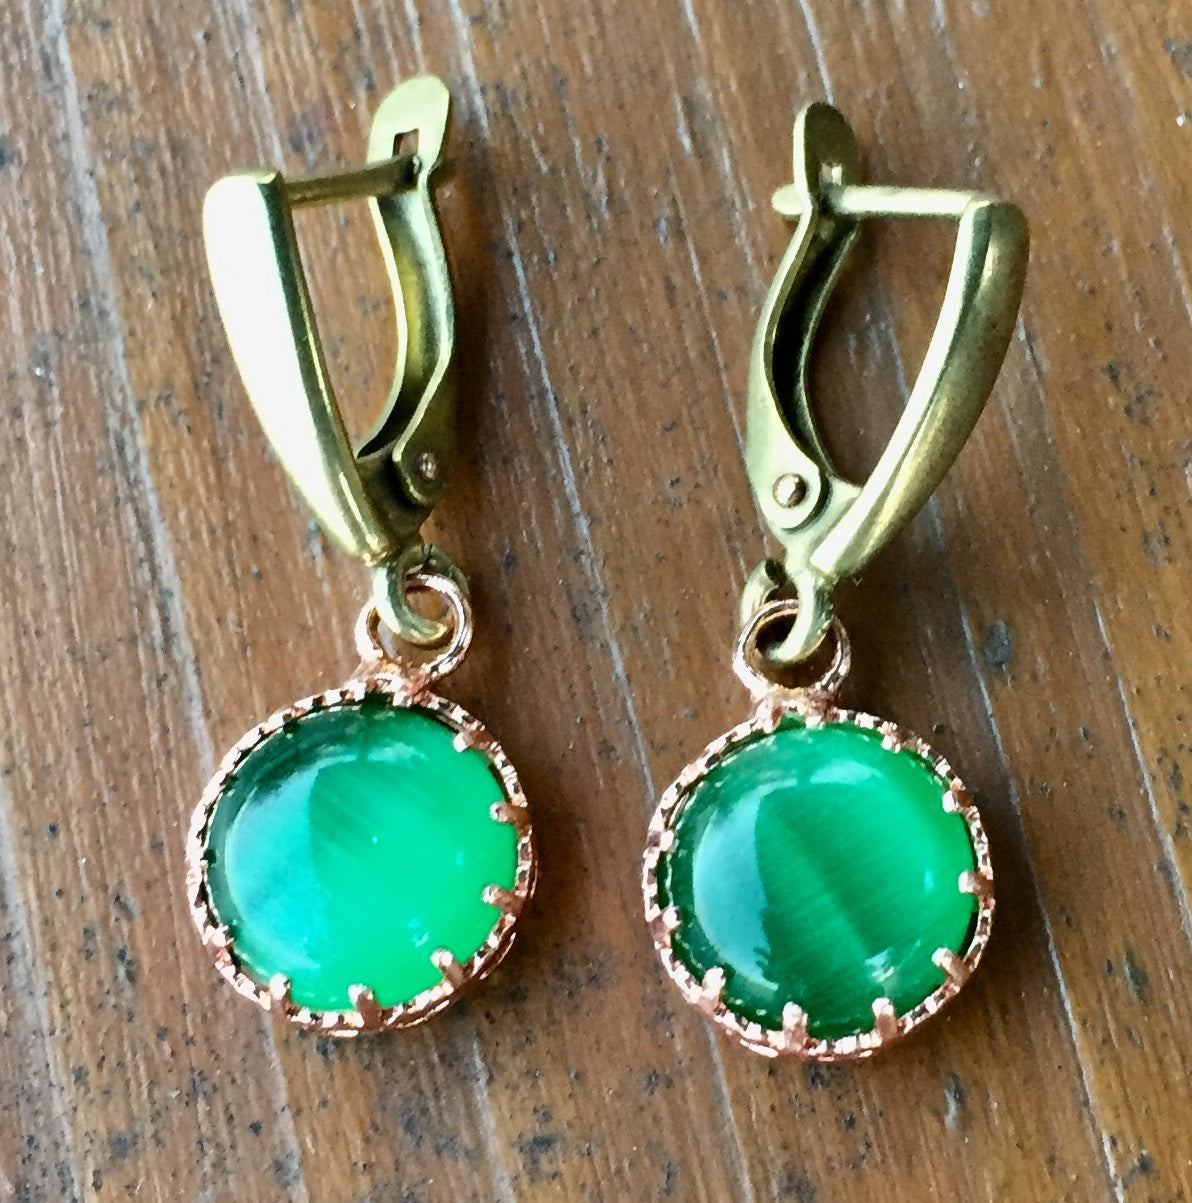 Green Chatoyant Glass and Copper Earrings